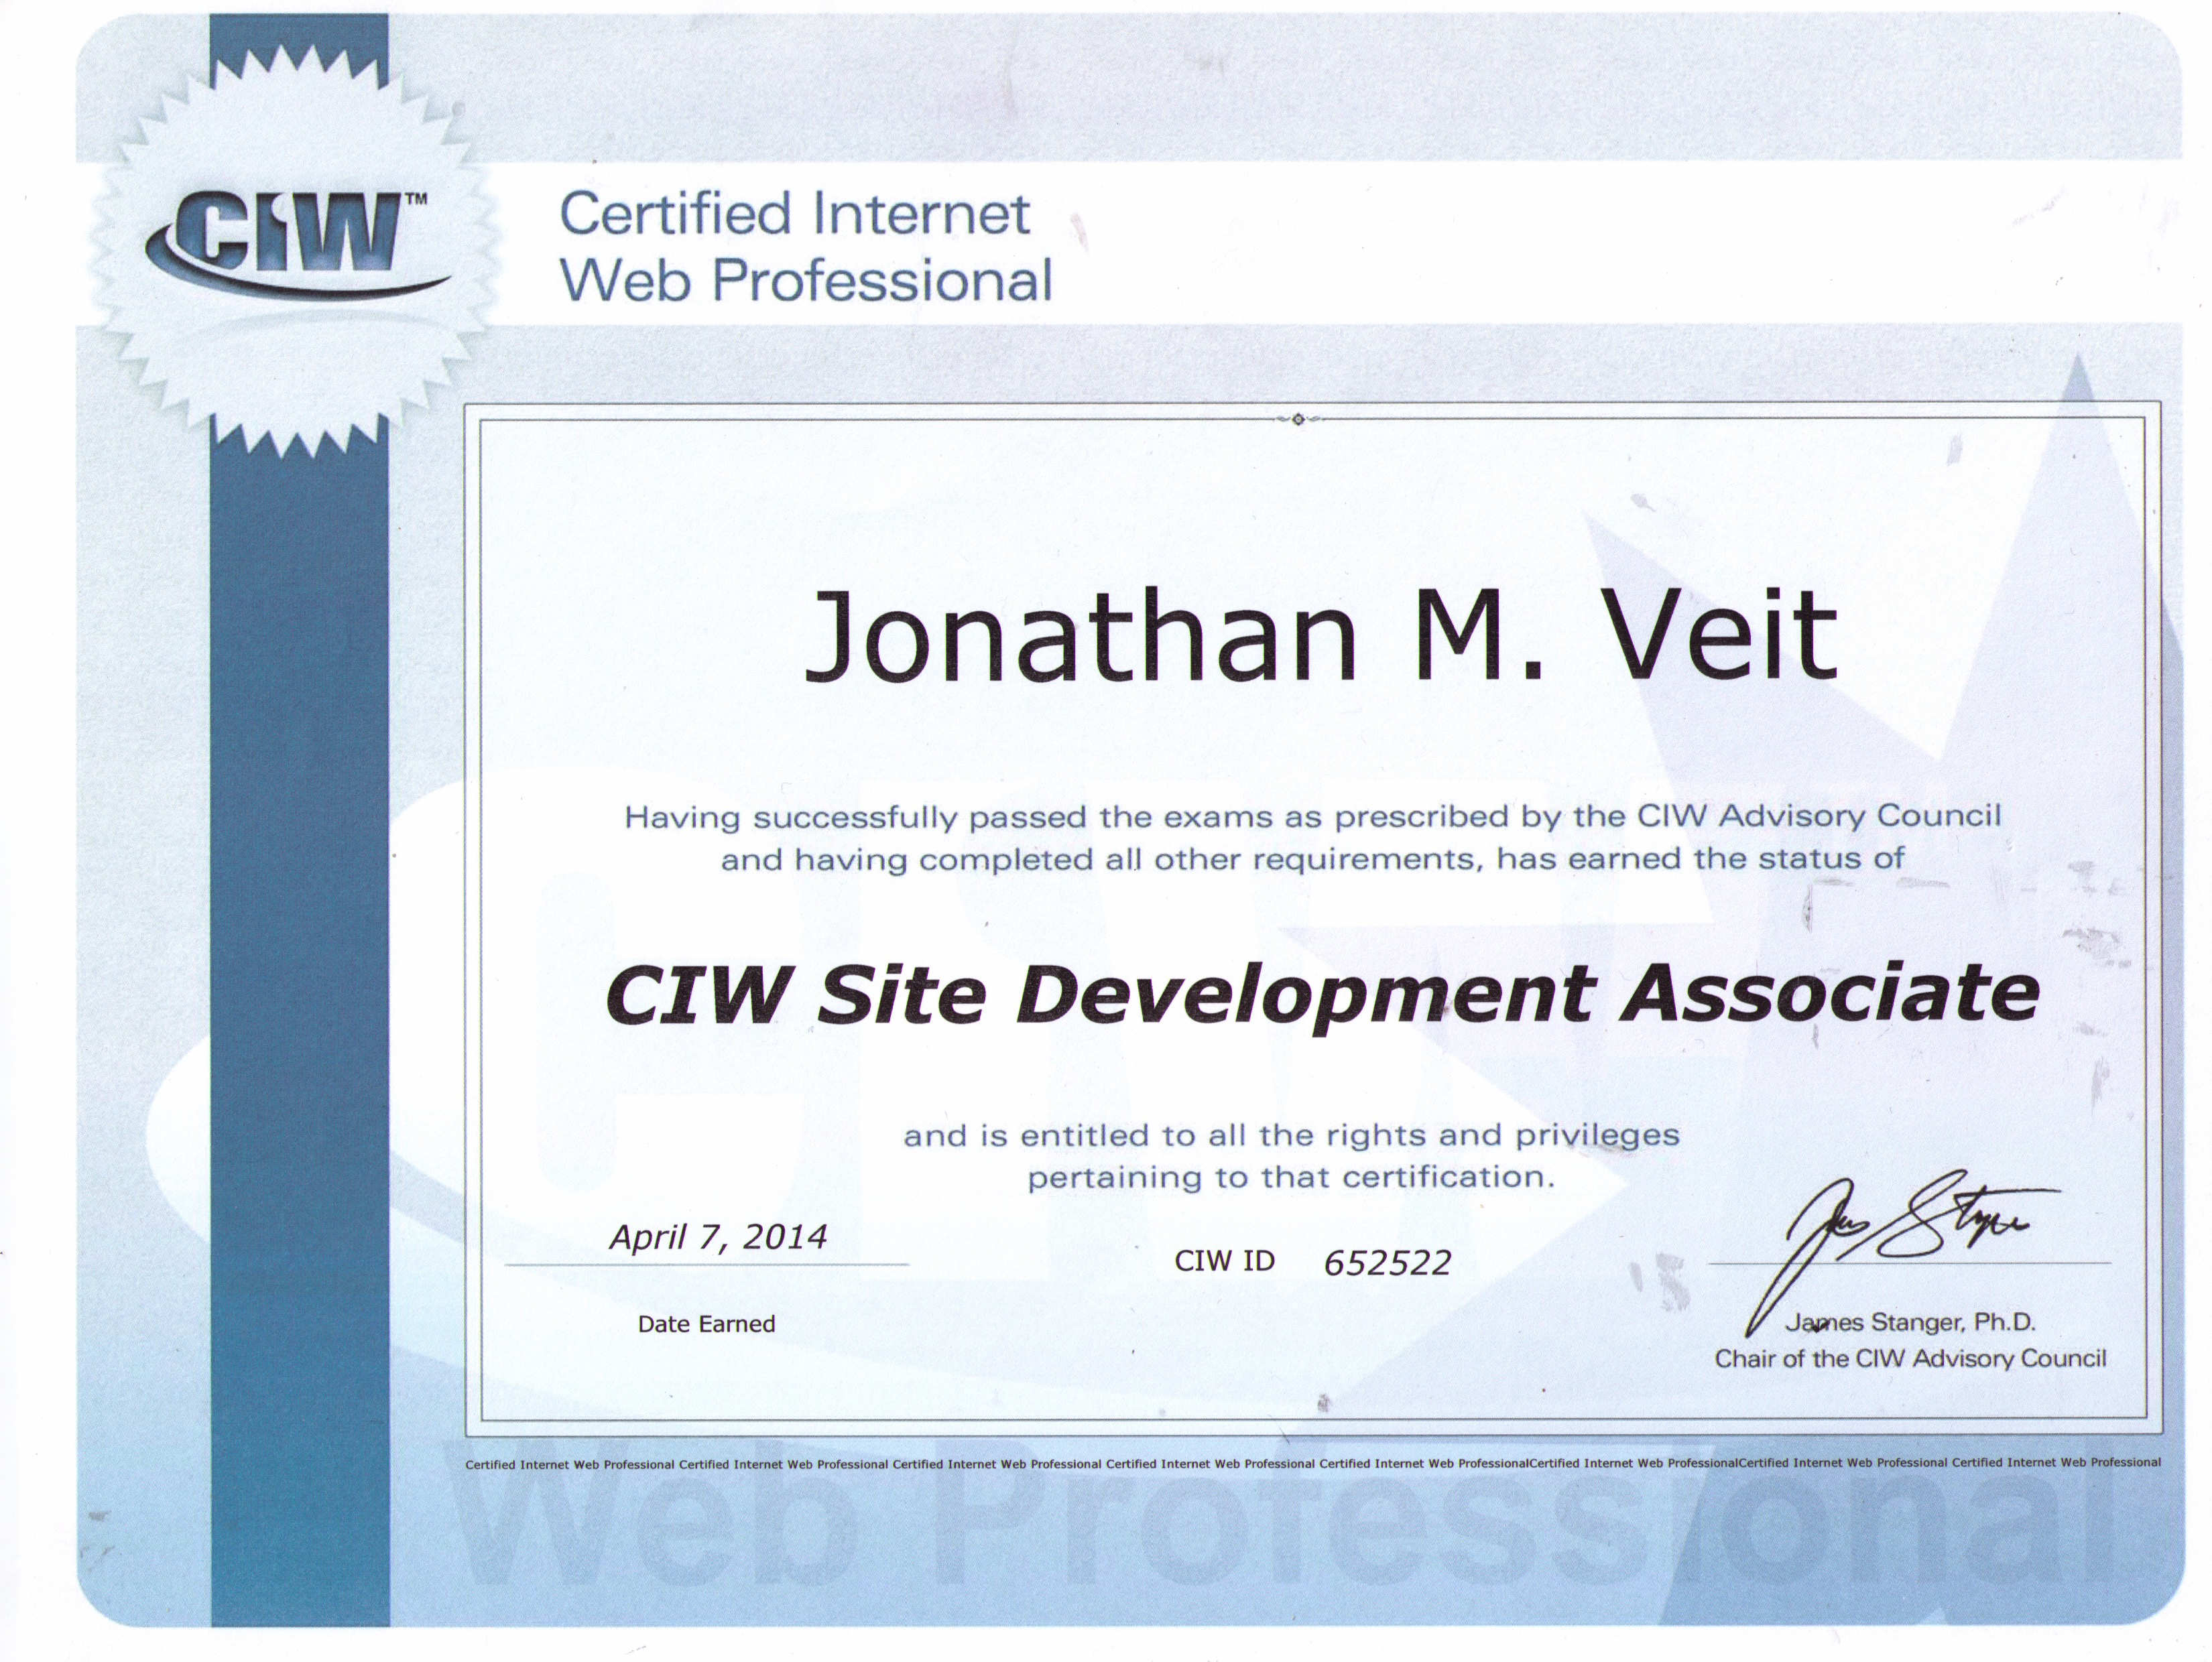 JonVeit com - Web design and database development services